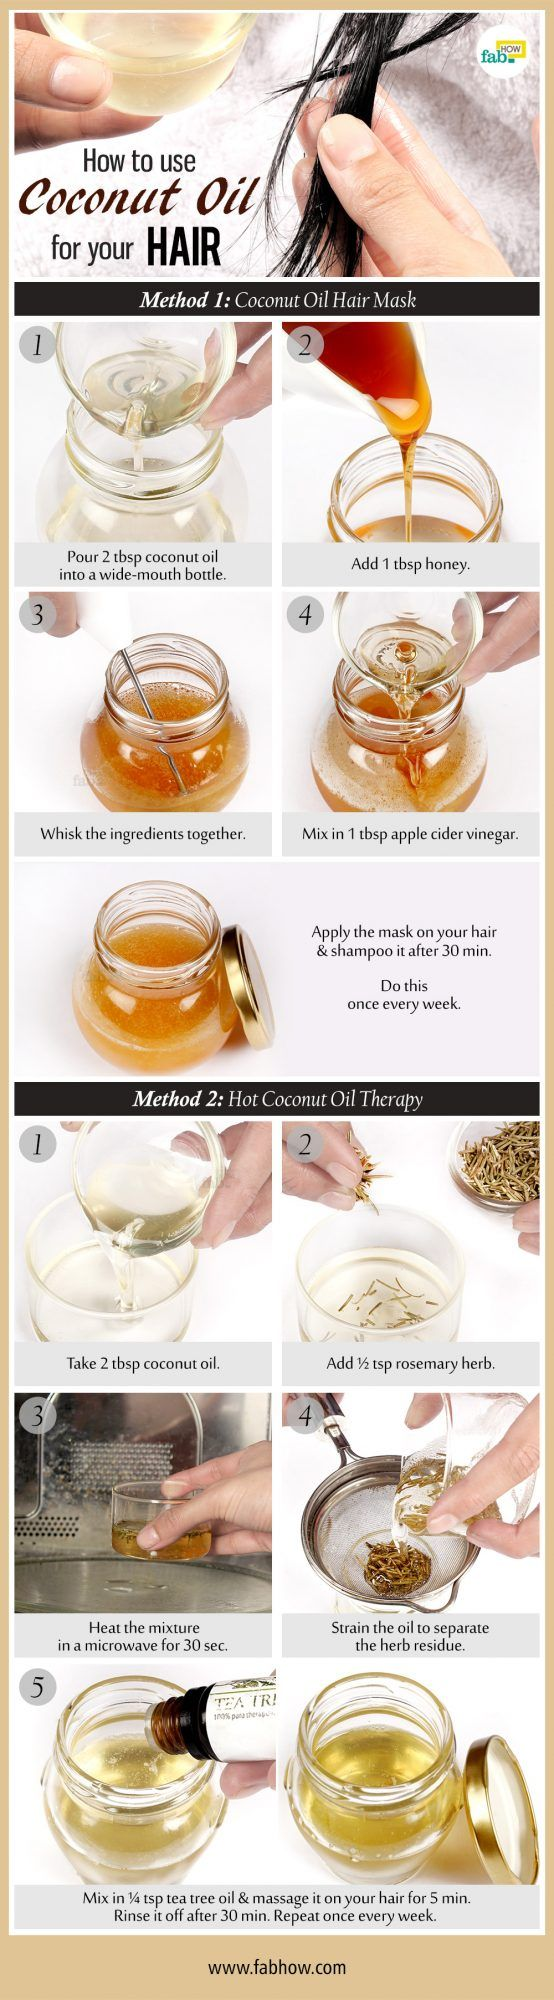 How to Correctly Use Coconut Oil For Gorgeous Hair